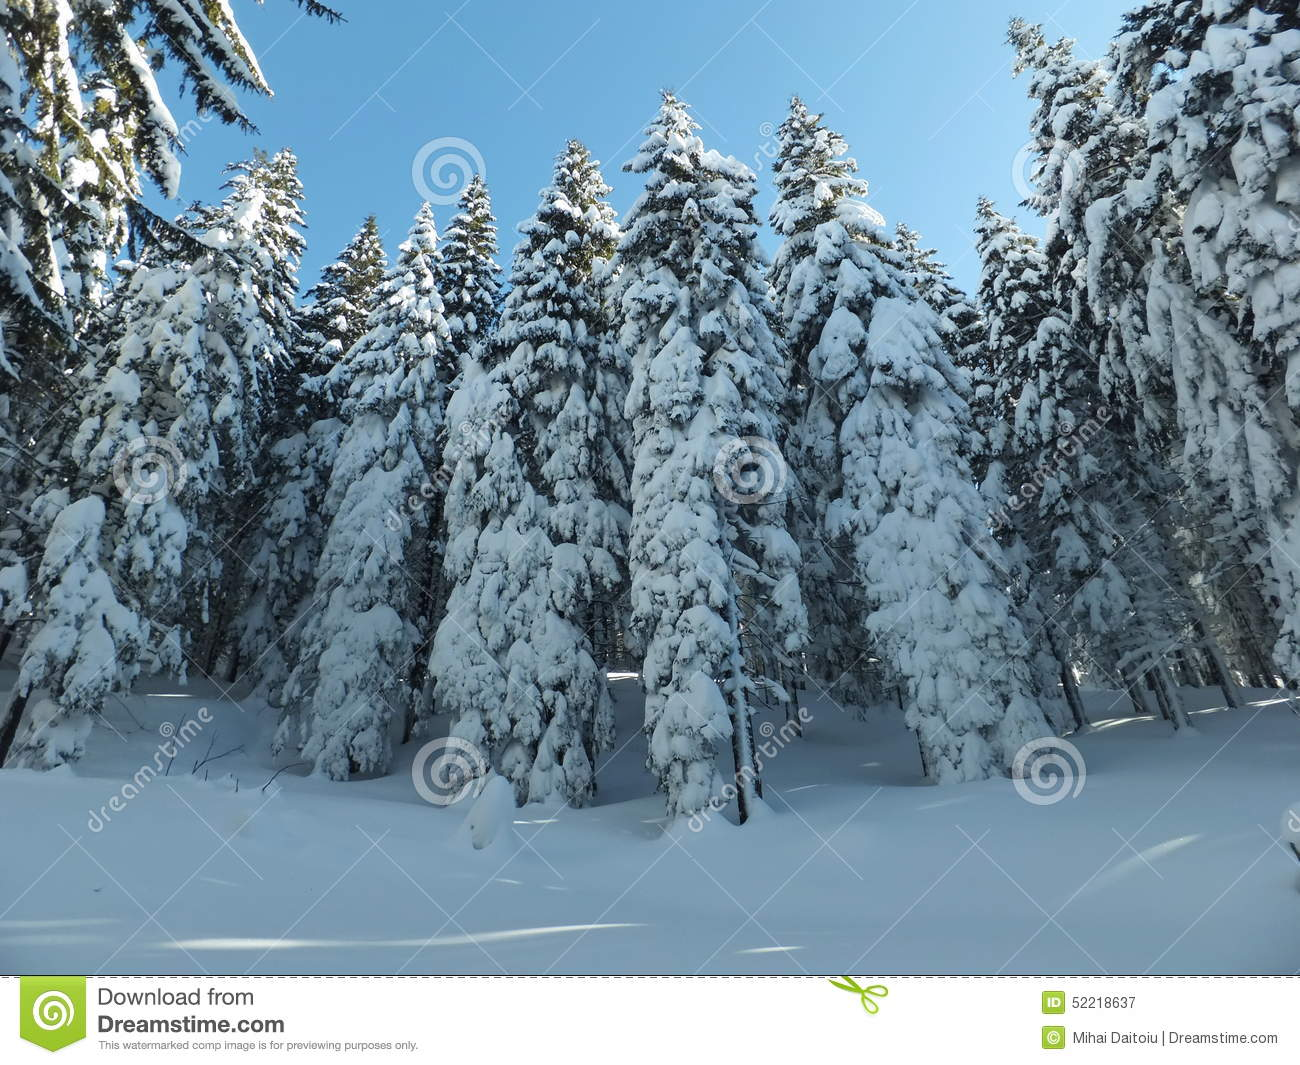 snowy fir trees forest - photo #28